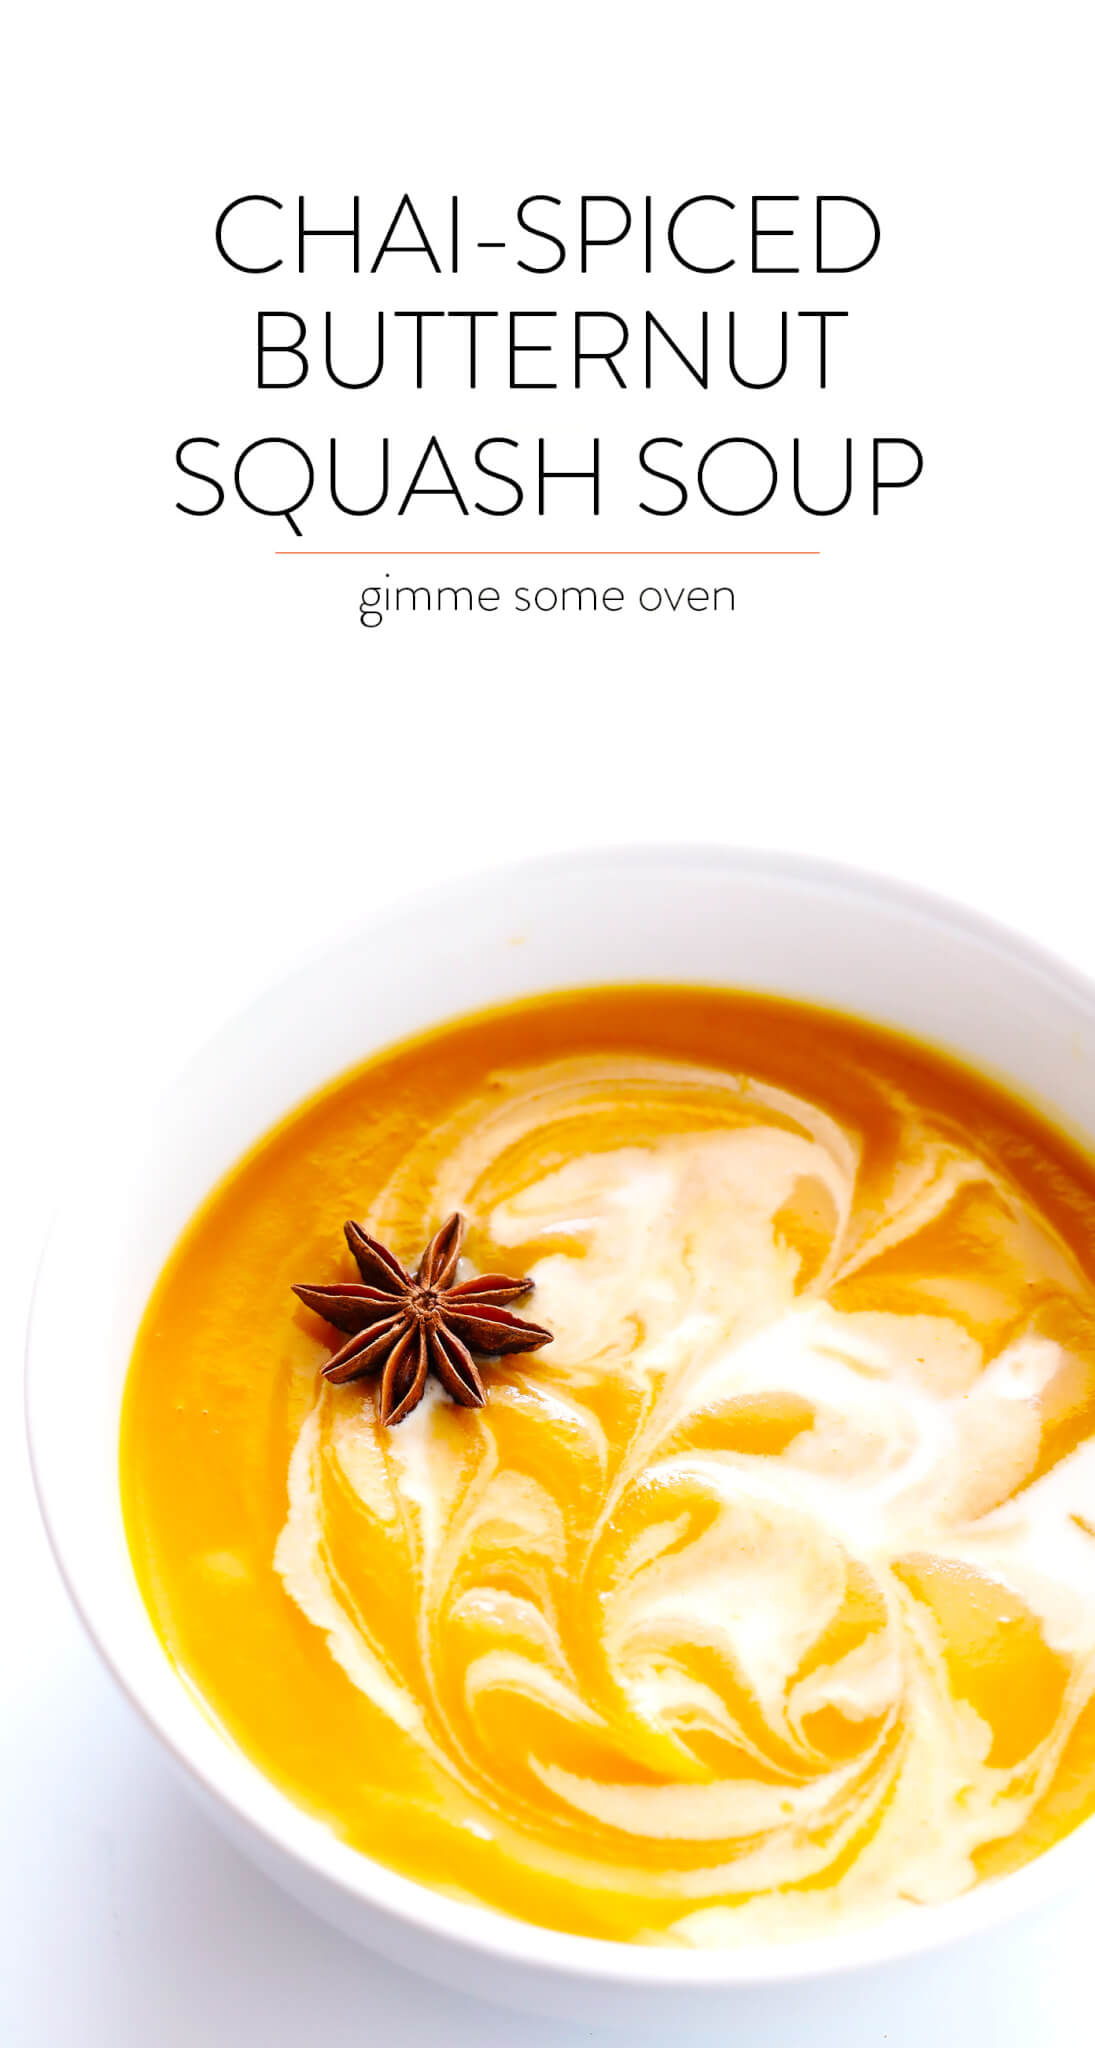 Chai-Spiced Butternut Squash Soup Recipe